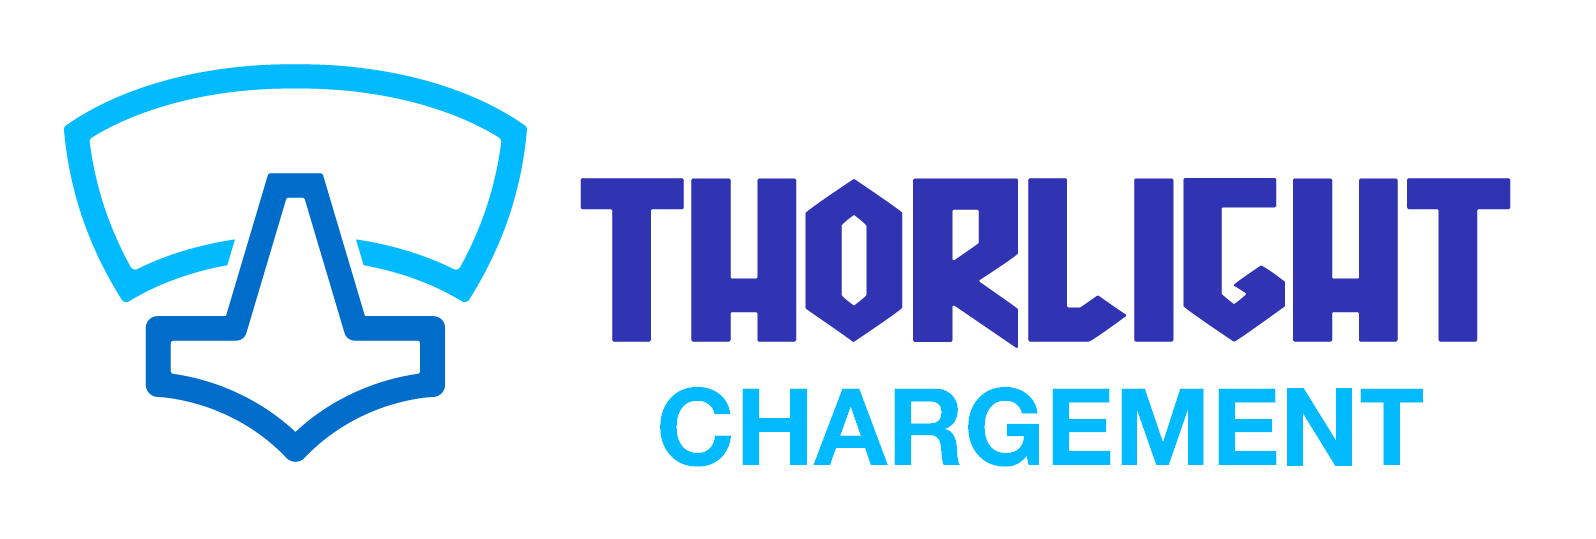 Thorlight – Dare to innovate!